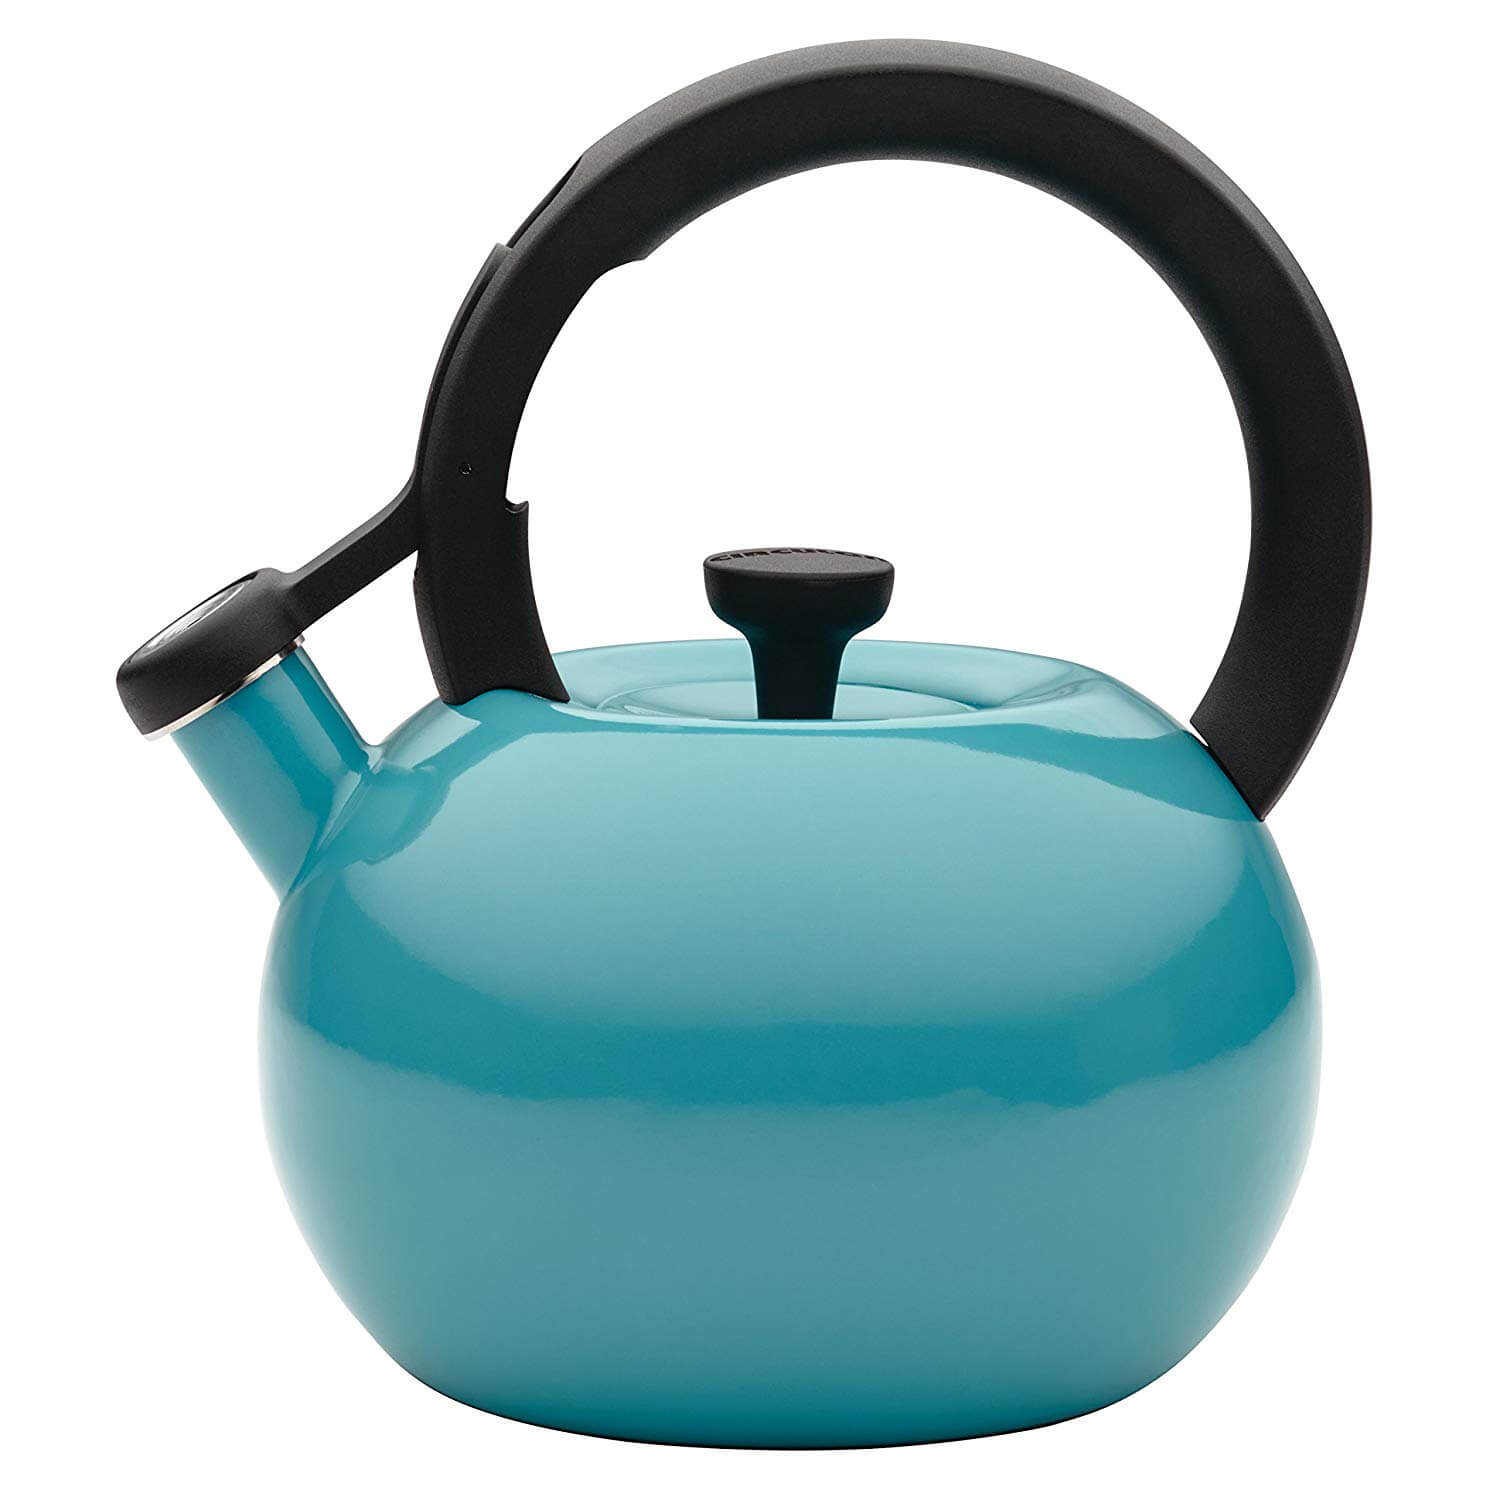 Circulon Circles Tea Kettle, Capri Turquoise